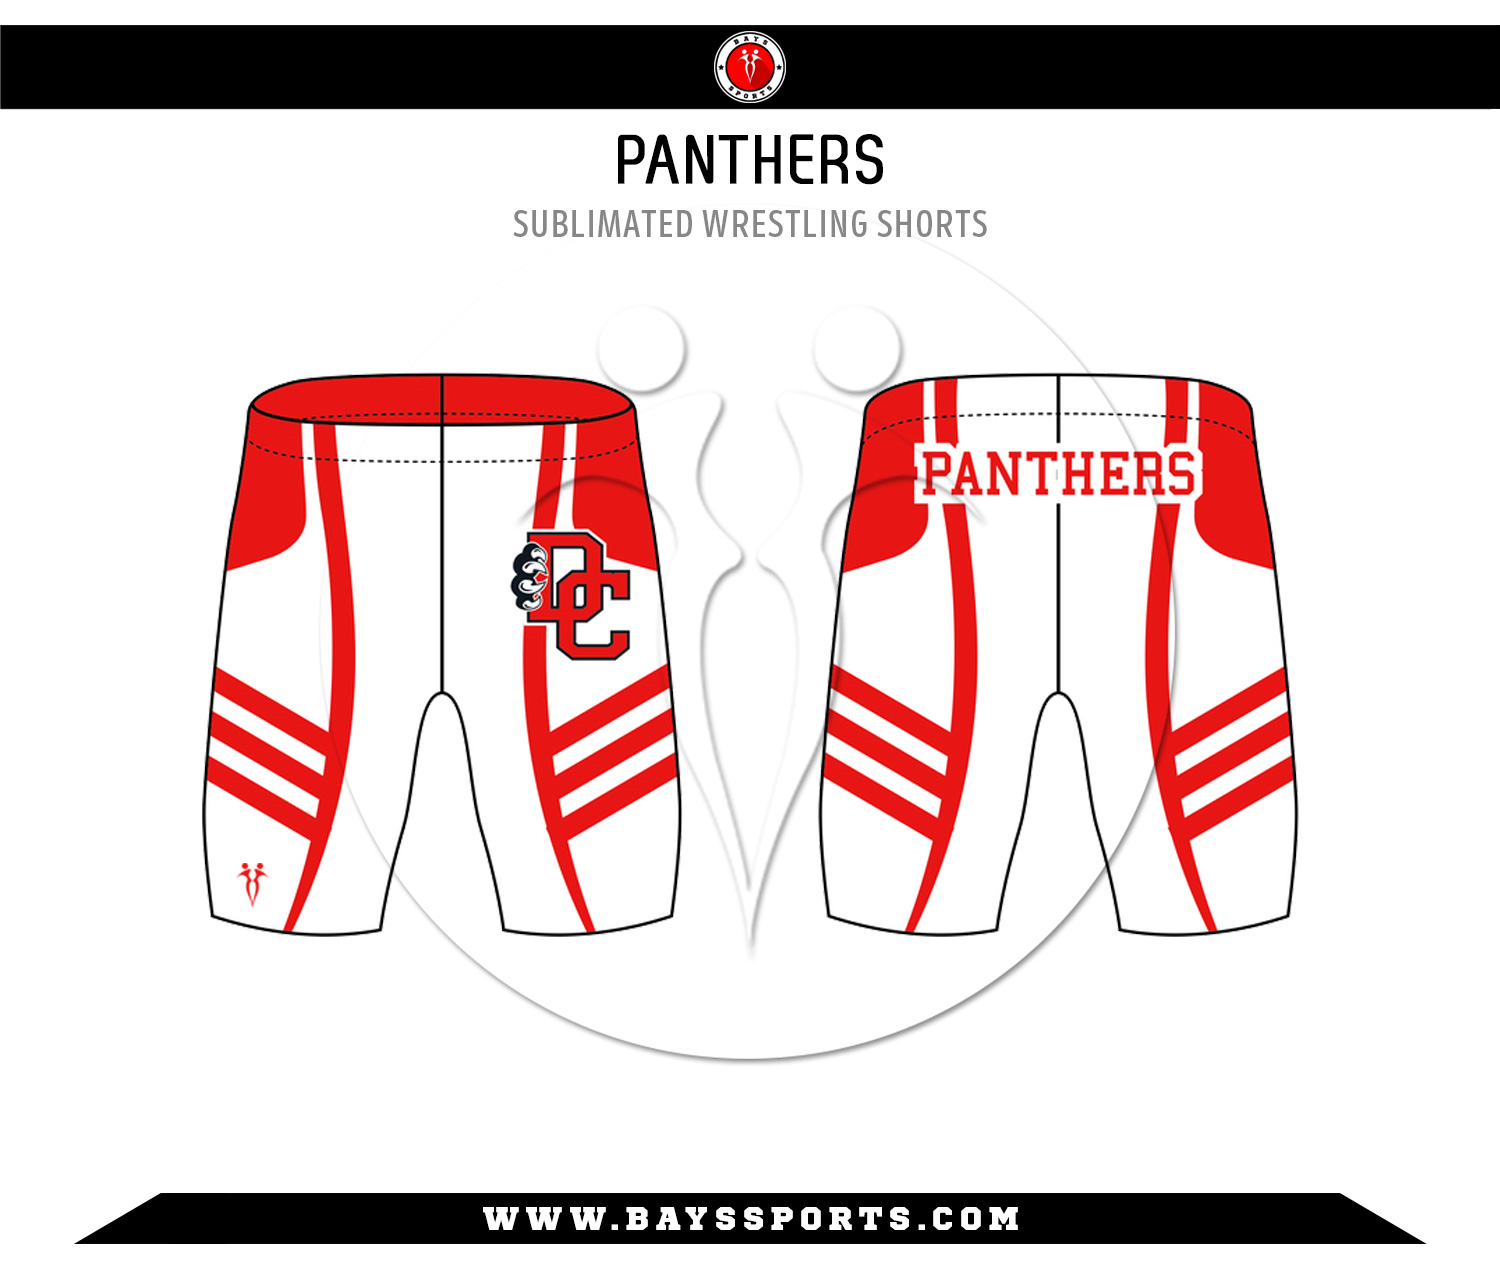 Sublimated Wrestling Shorts